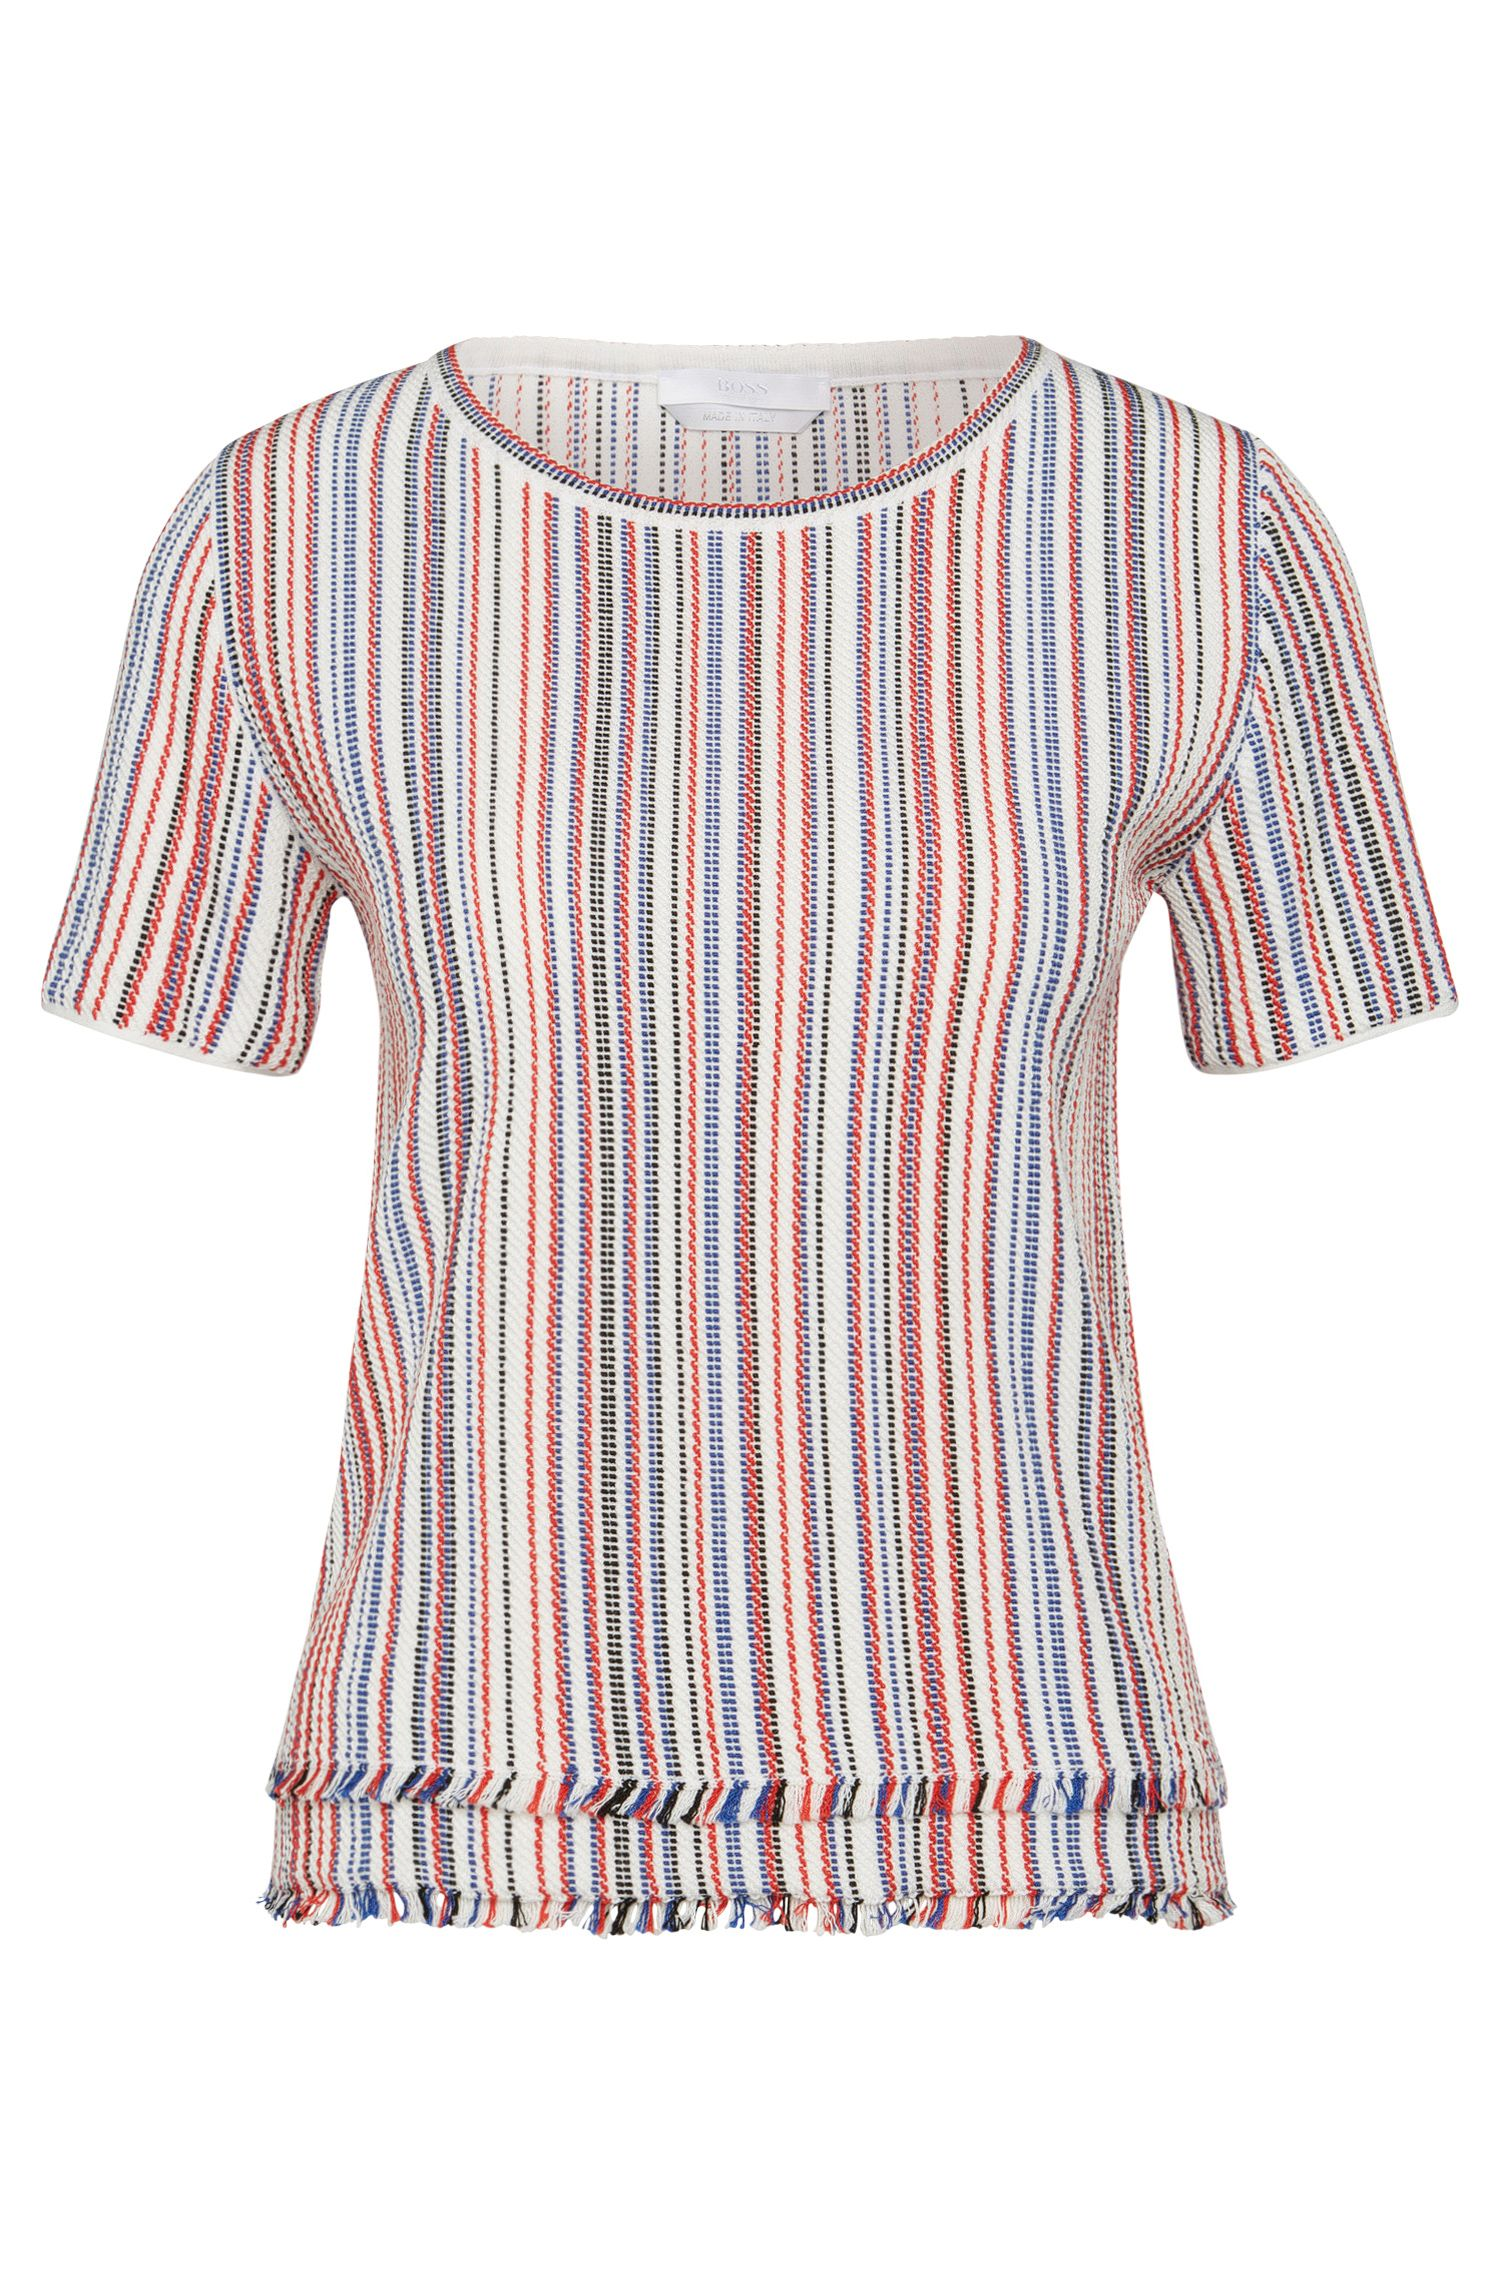 Striped t-shirt in cotton blend with viscose: 'Fina'